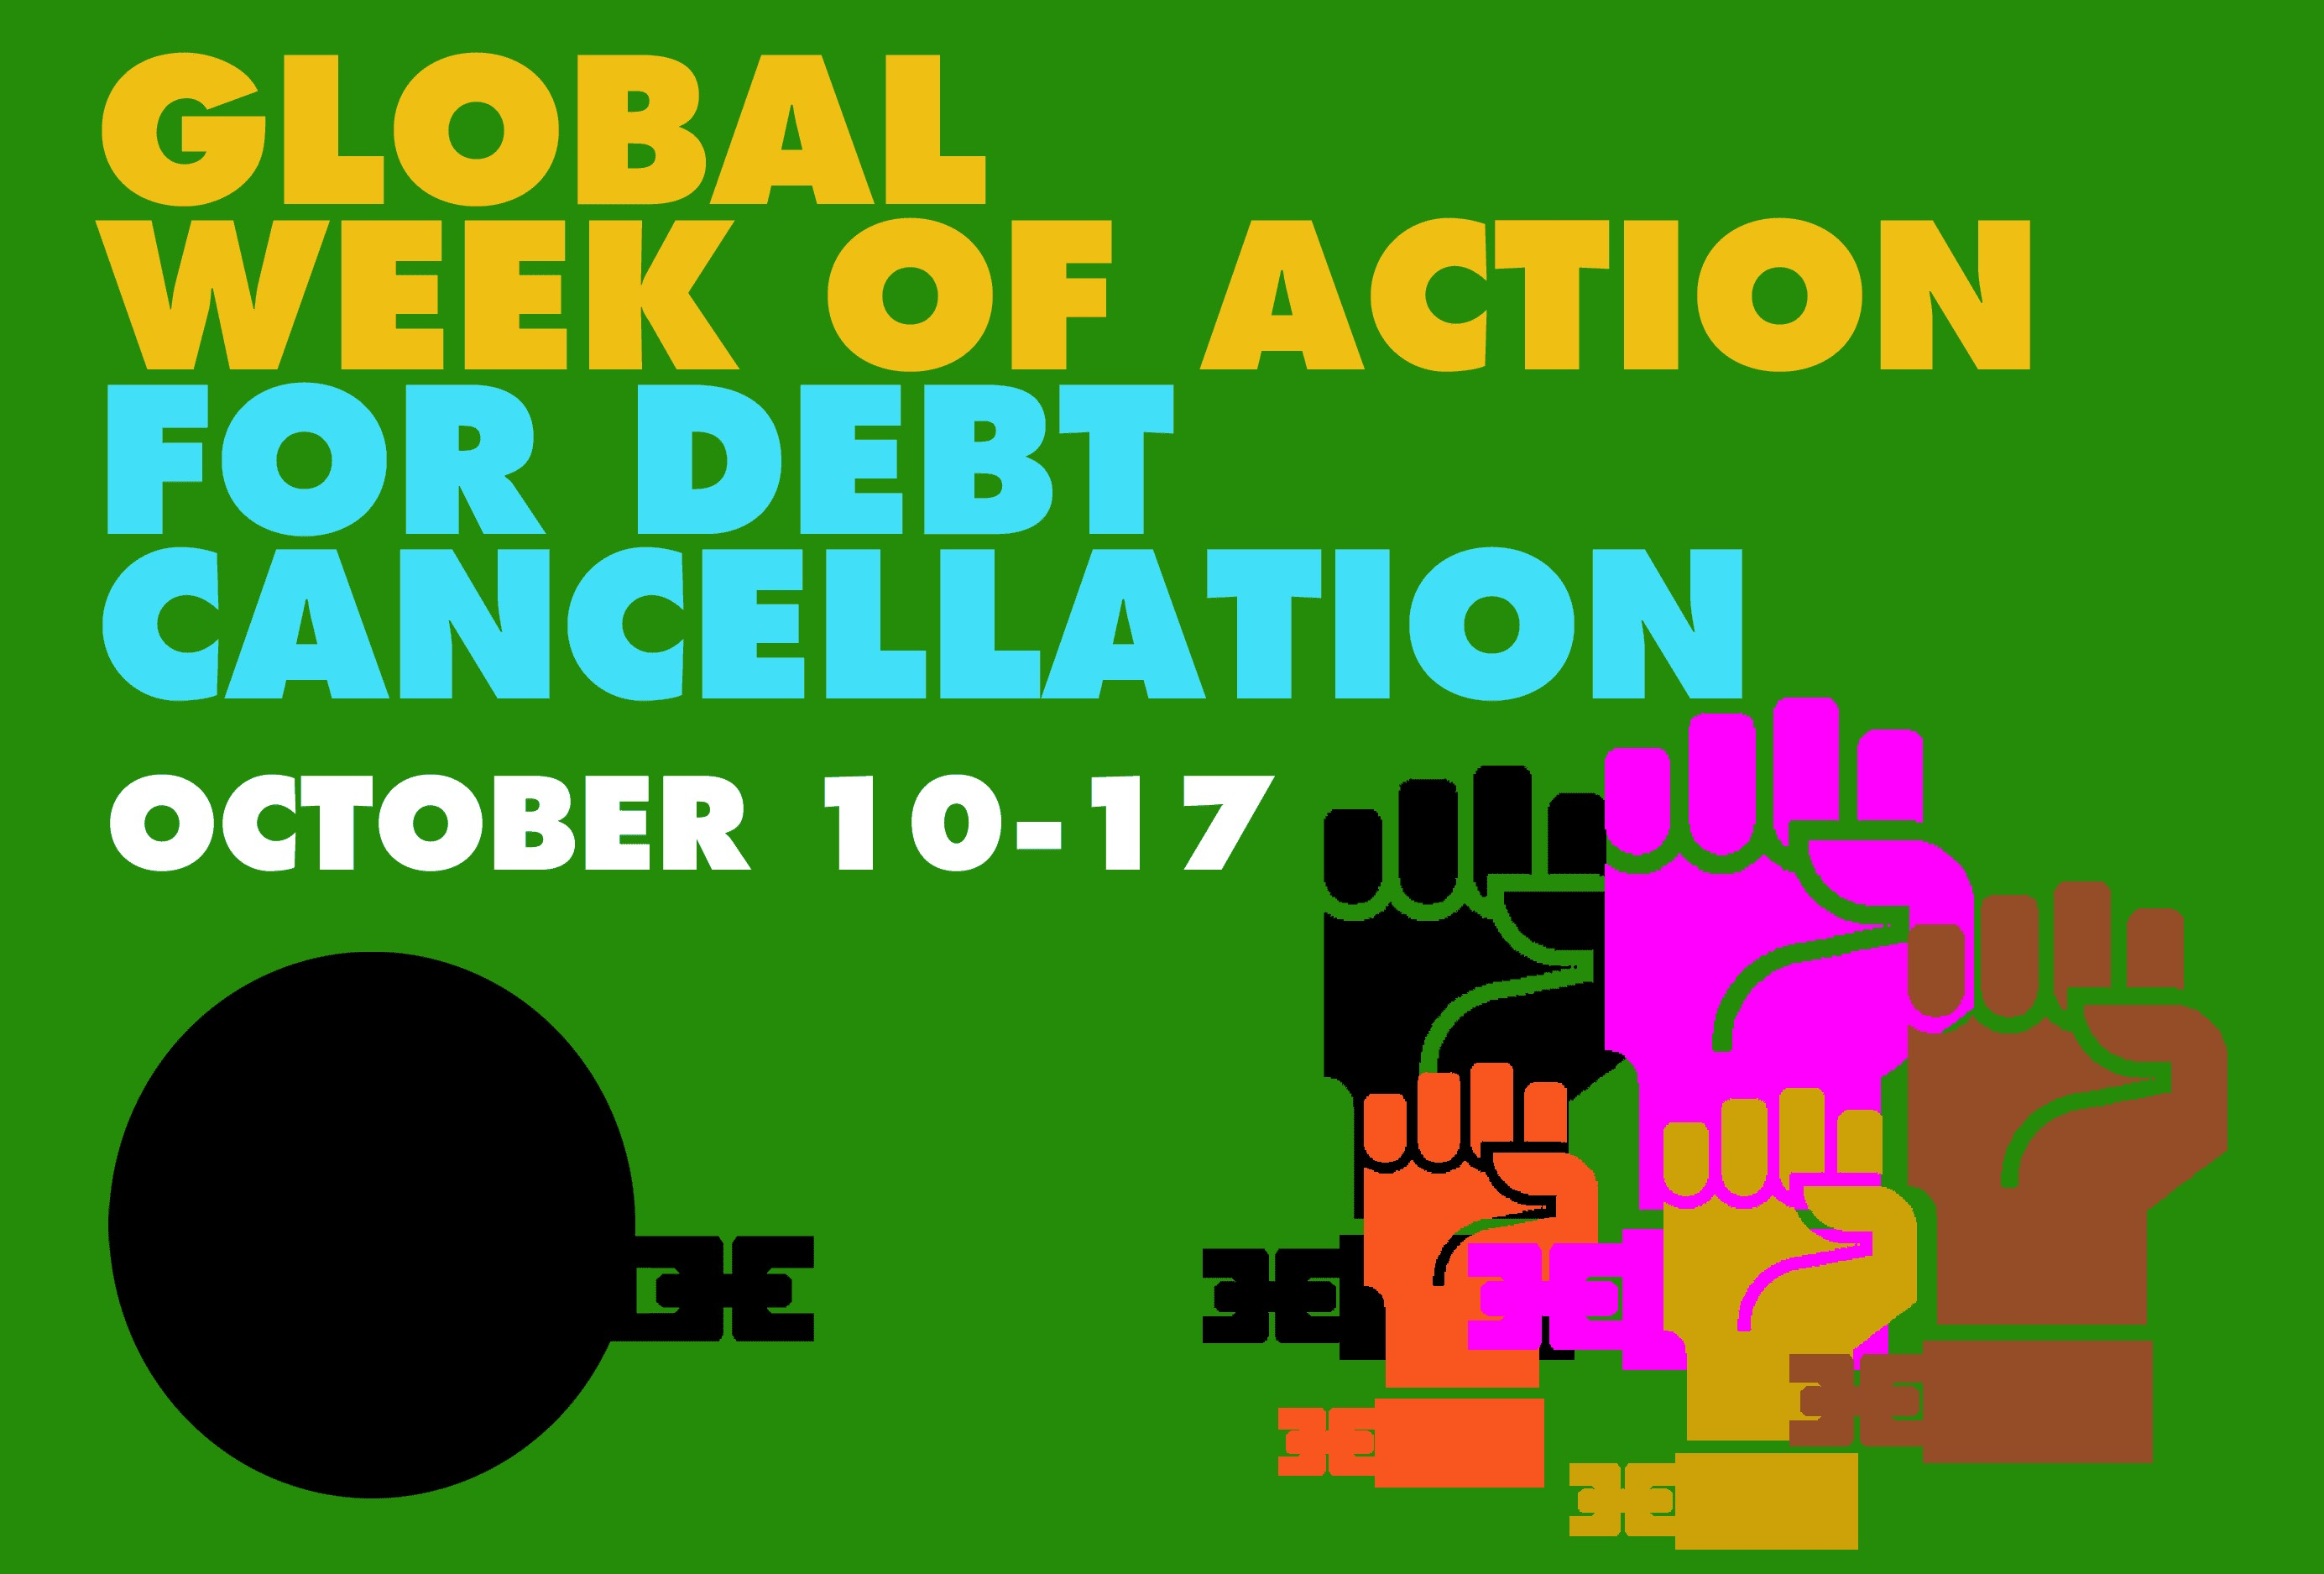 'Global week of action for debt cancellation - October 10-17' text on green background with fists breaking a chain away from a ball